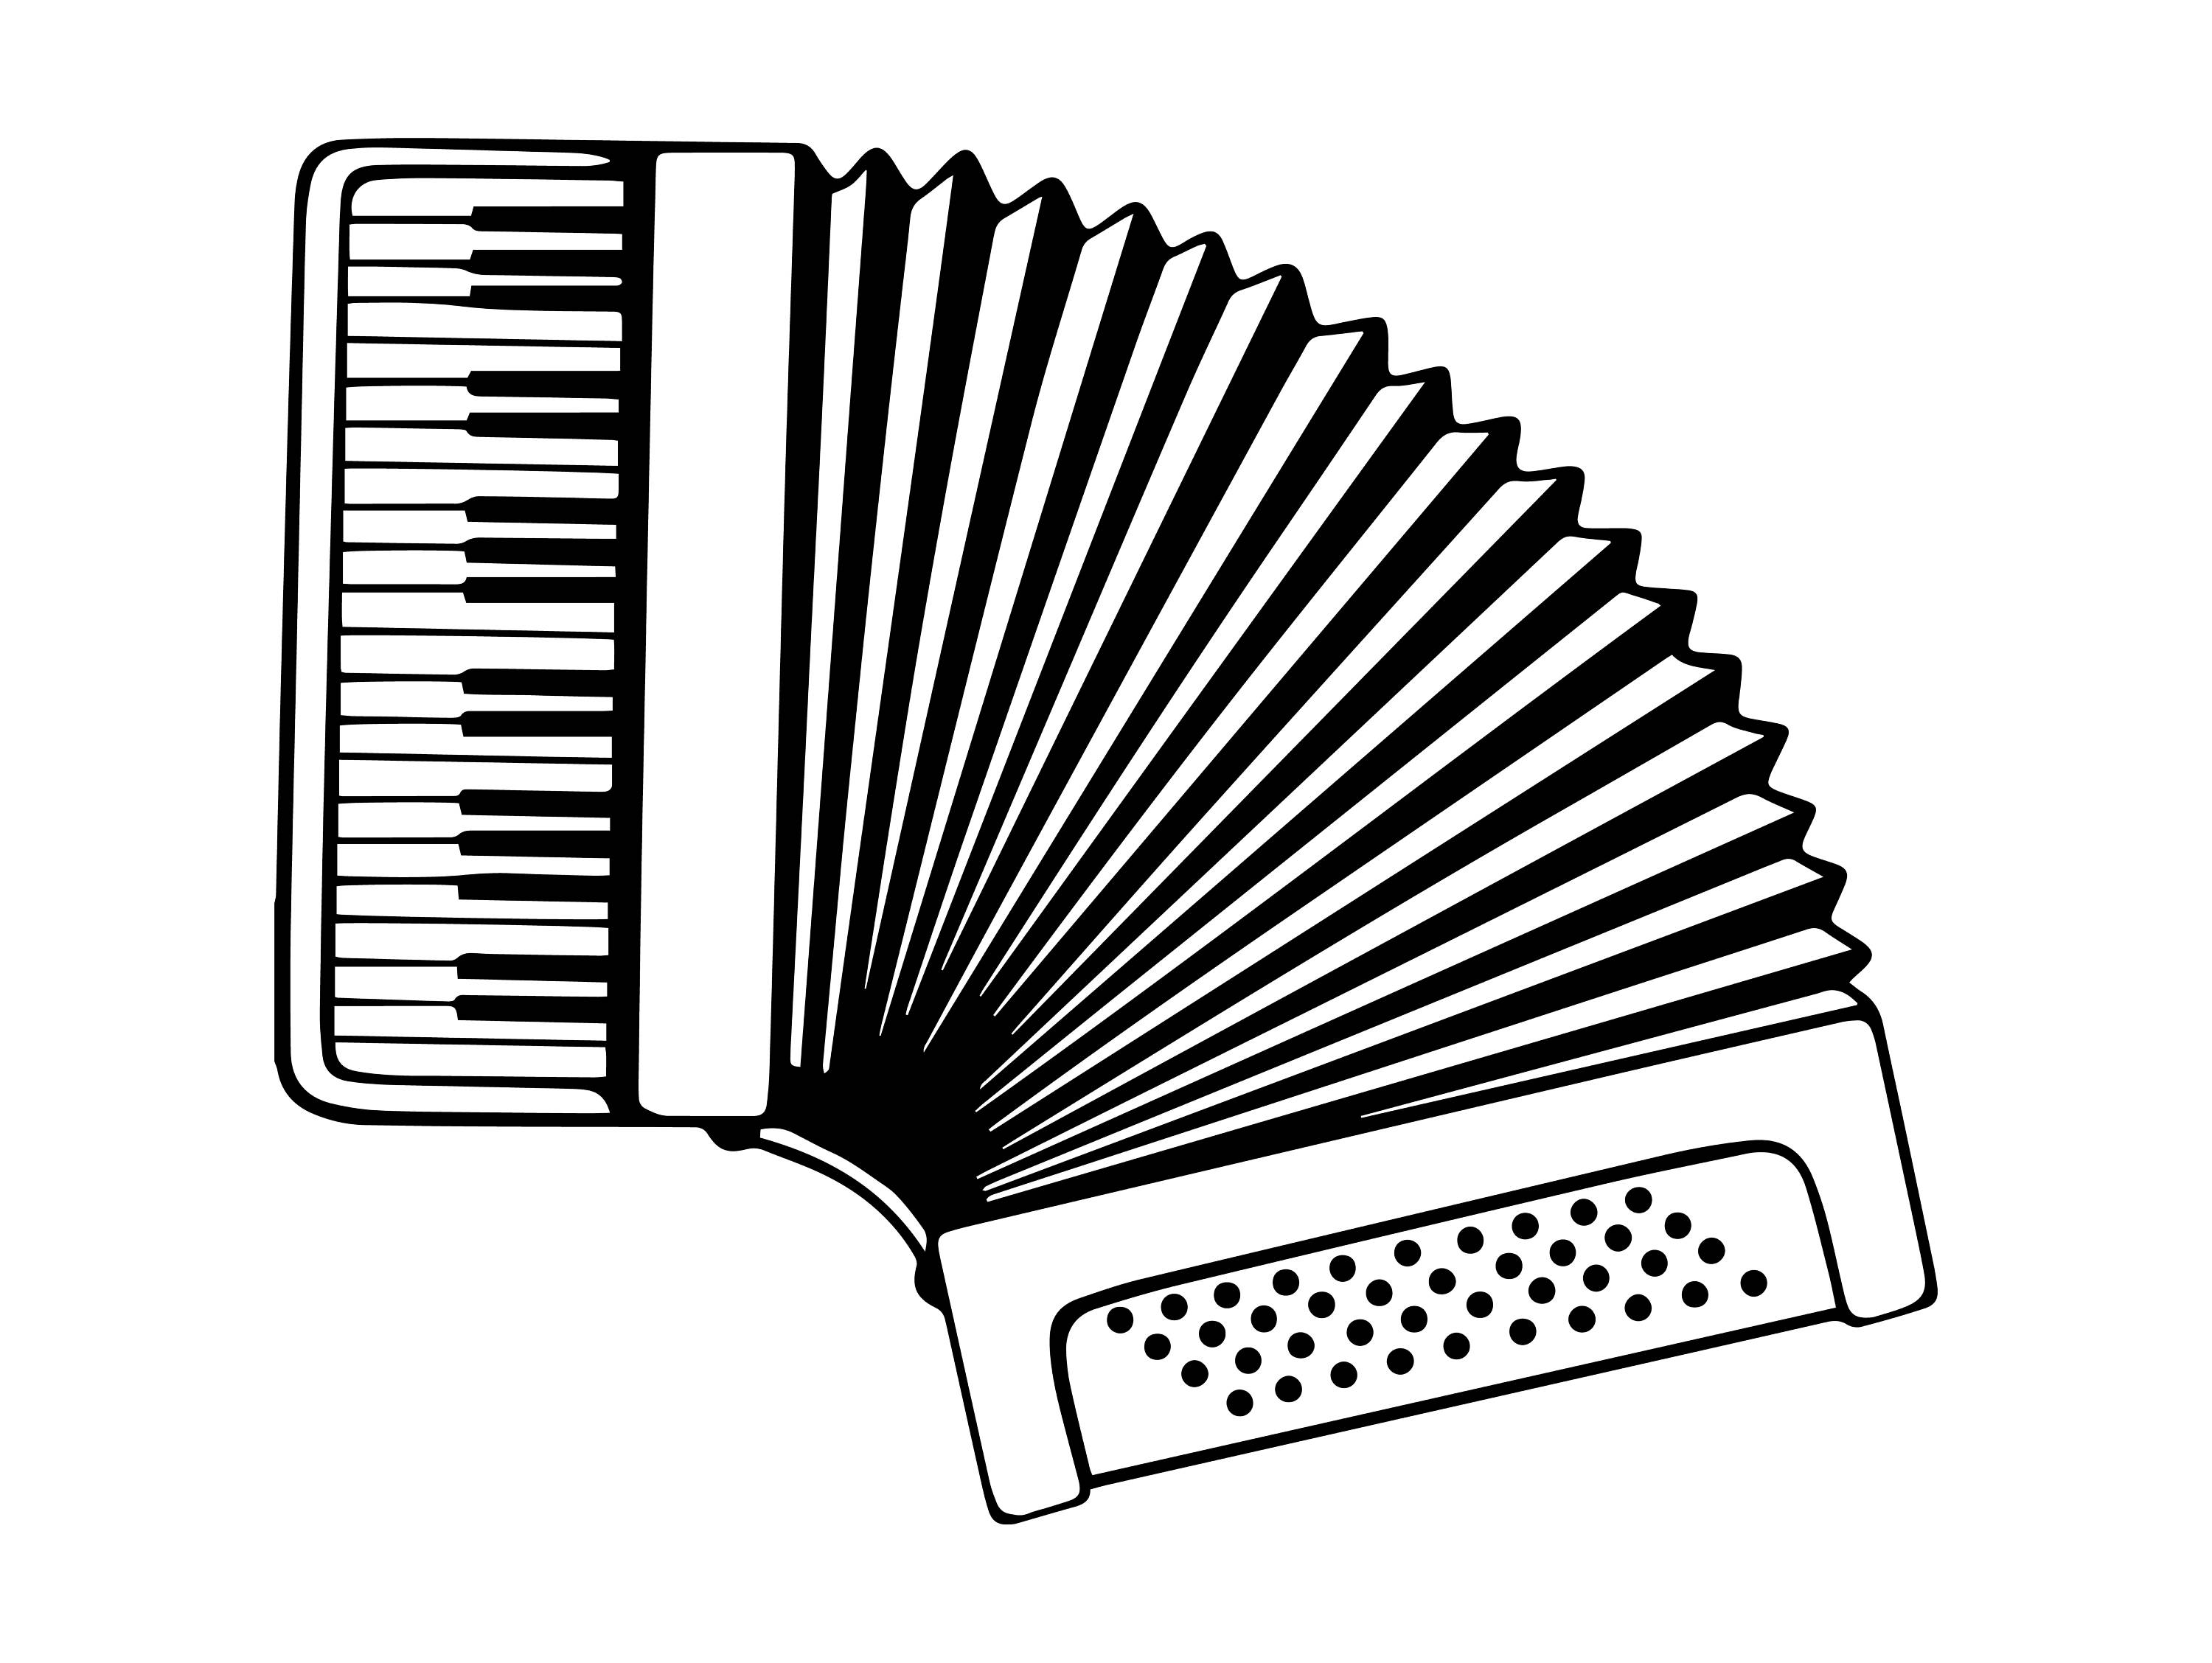 Accordion Drawing at GetDrawings com | Free for personal use